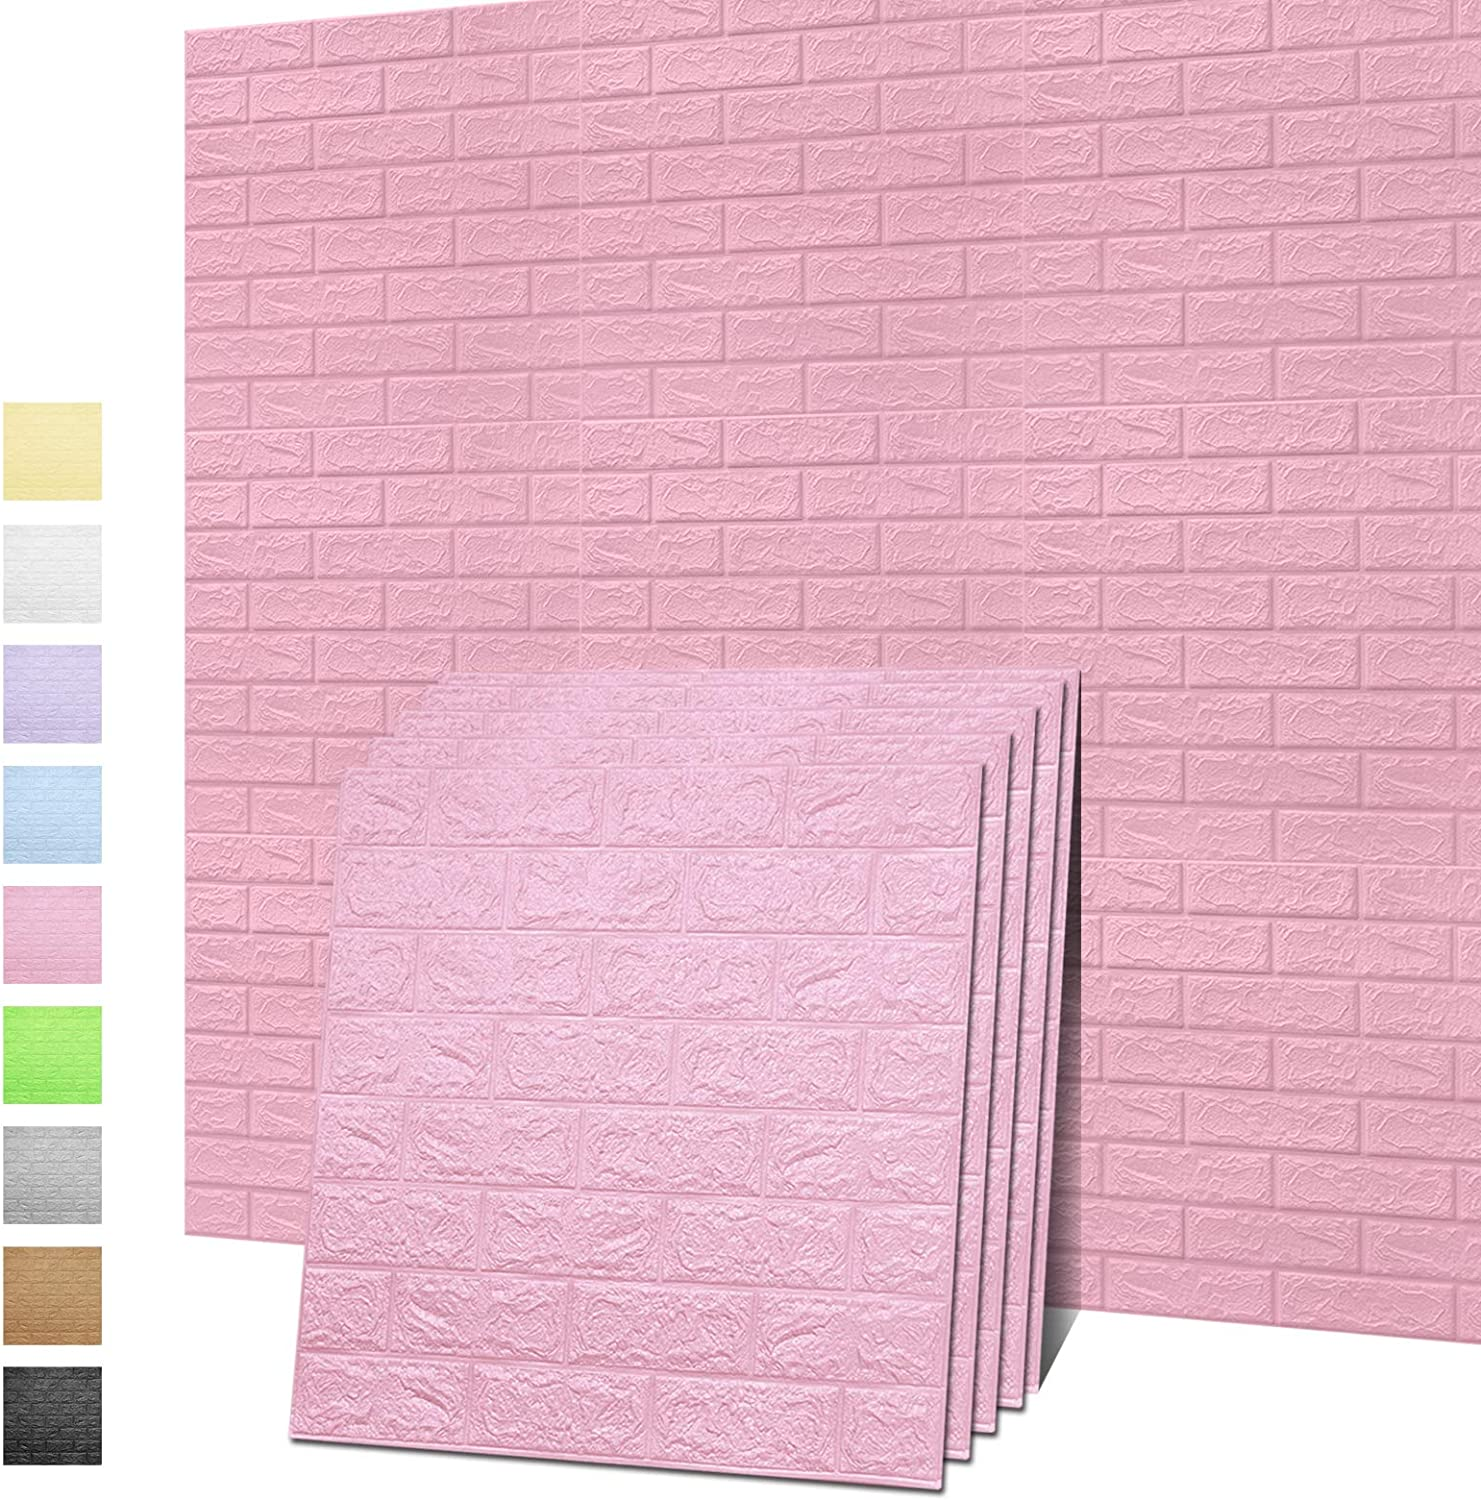 Sodeno 3D Wall Panels, 10 Pack 3D Brick Self-Adhesive Waterproof PE Foam Wallpaper for Interior Wall Tile Decor, TV Wall,Bathroom, Living Room Home Decoration- 39 Sq Ft (Pink)